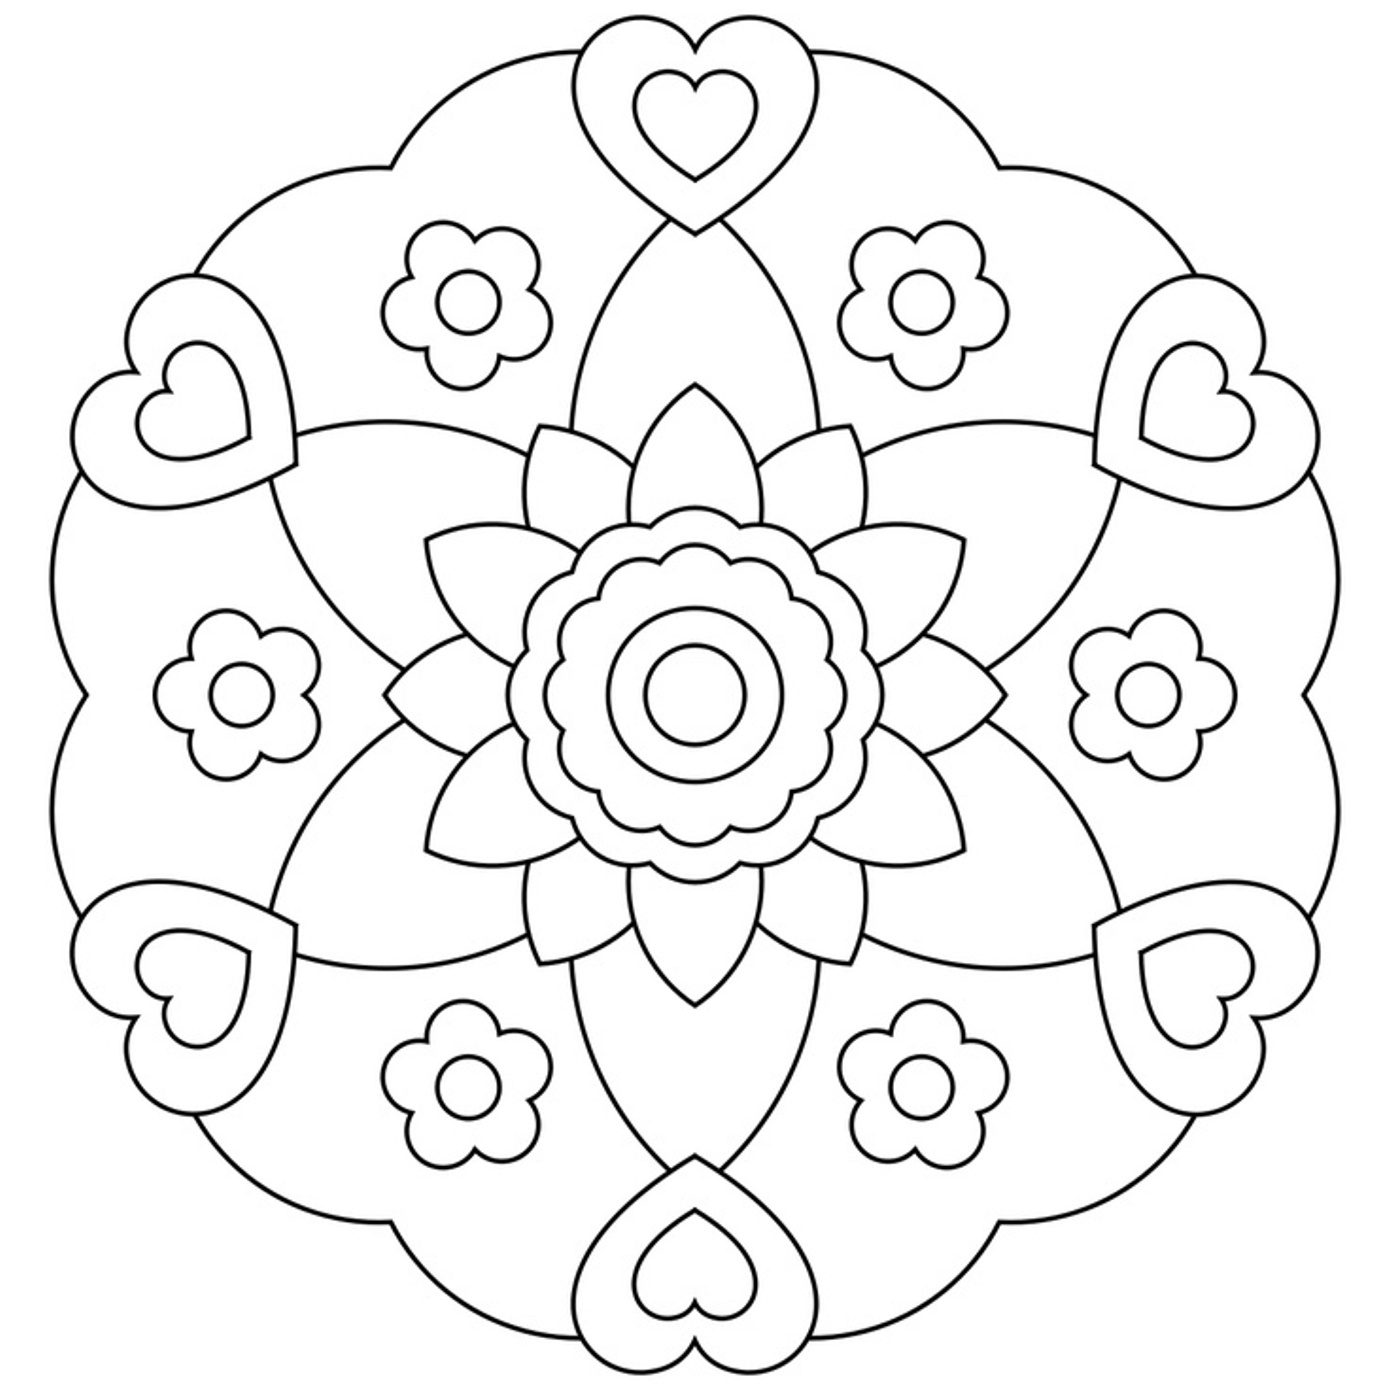 simple mandalas to color simple mandalas malas adult coloring pages color to simple mandalas